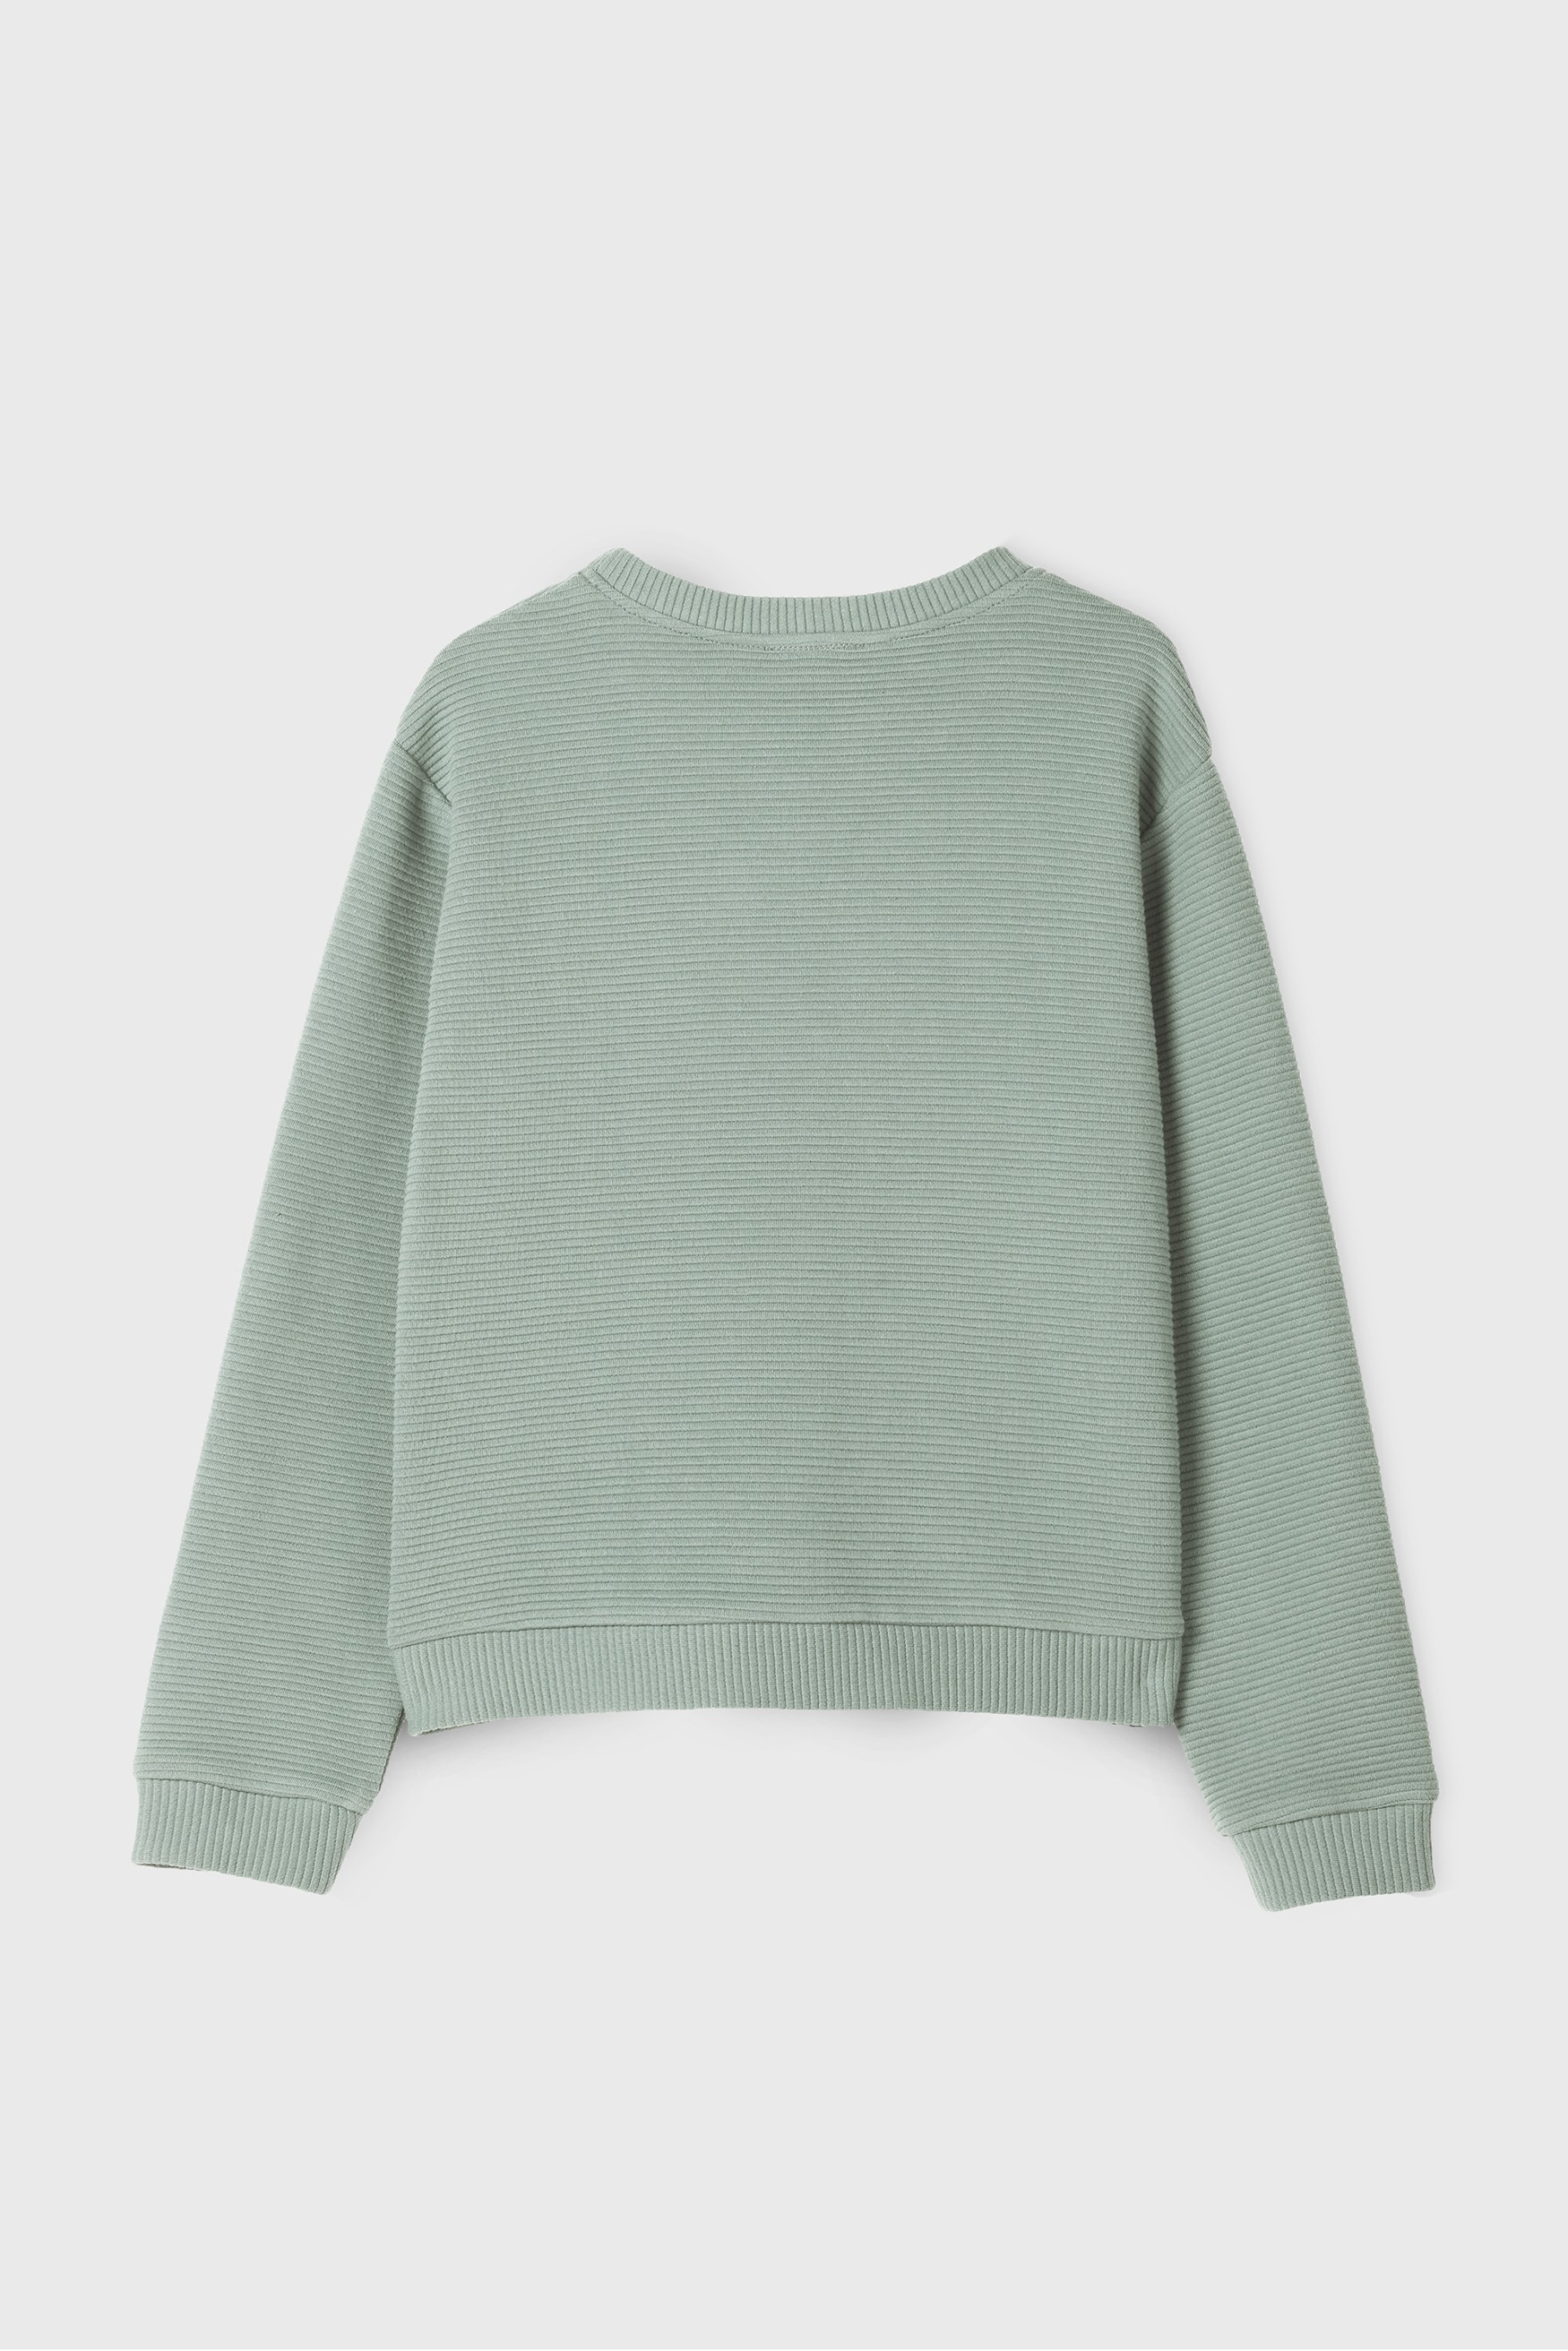 GREEN POCKET DETAIL SWEATSHIRT